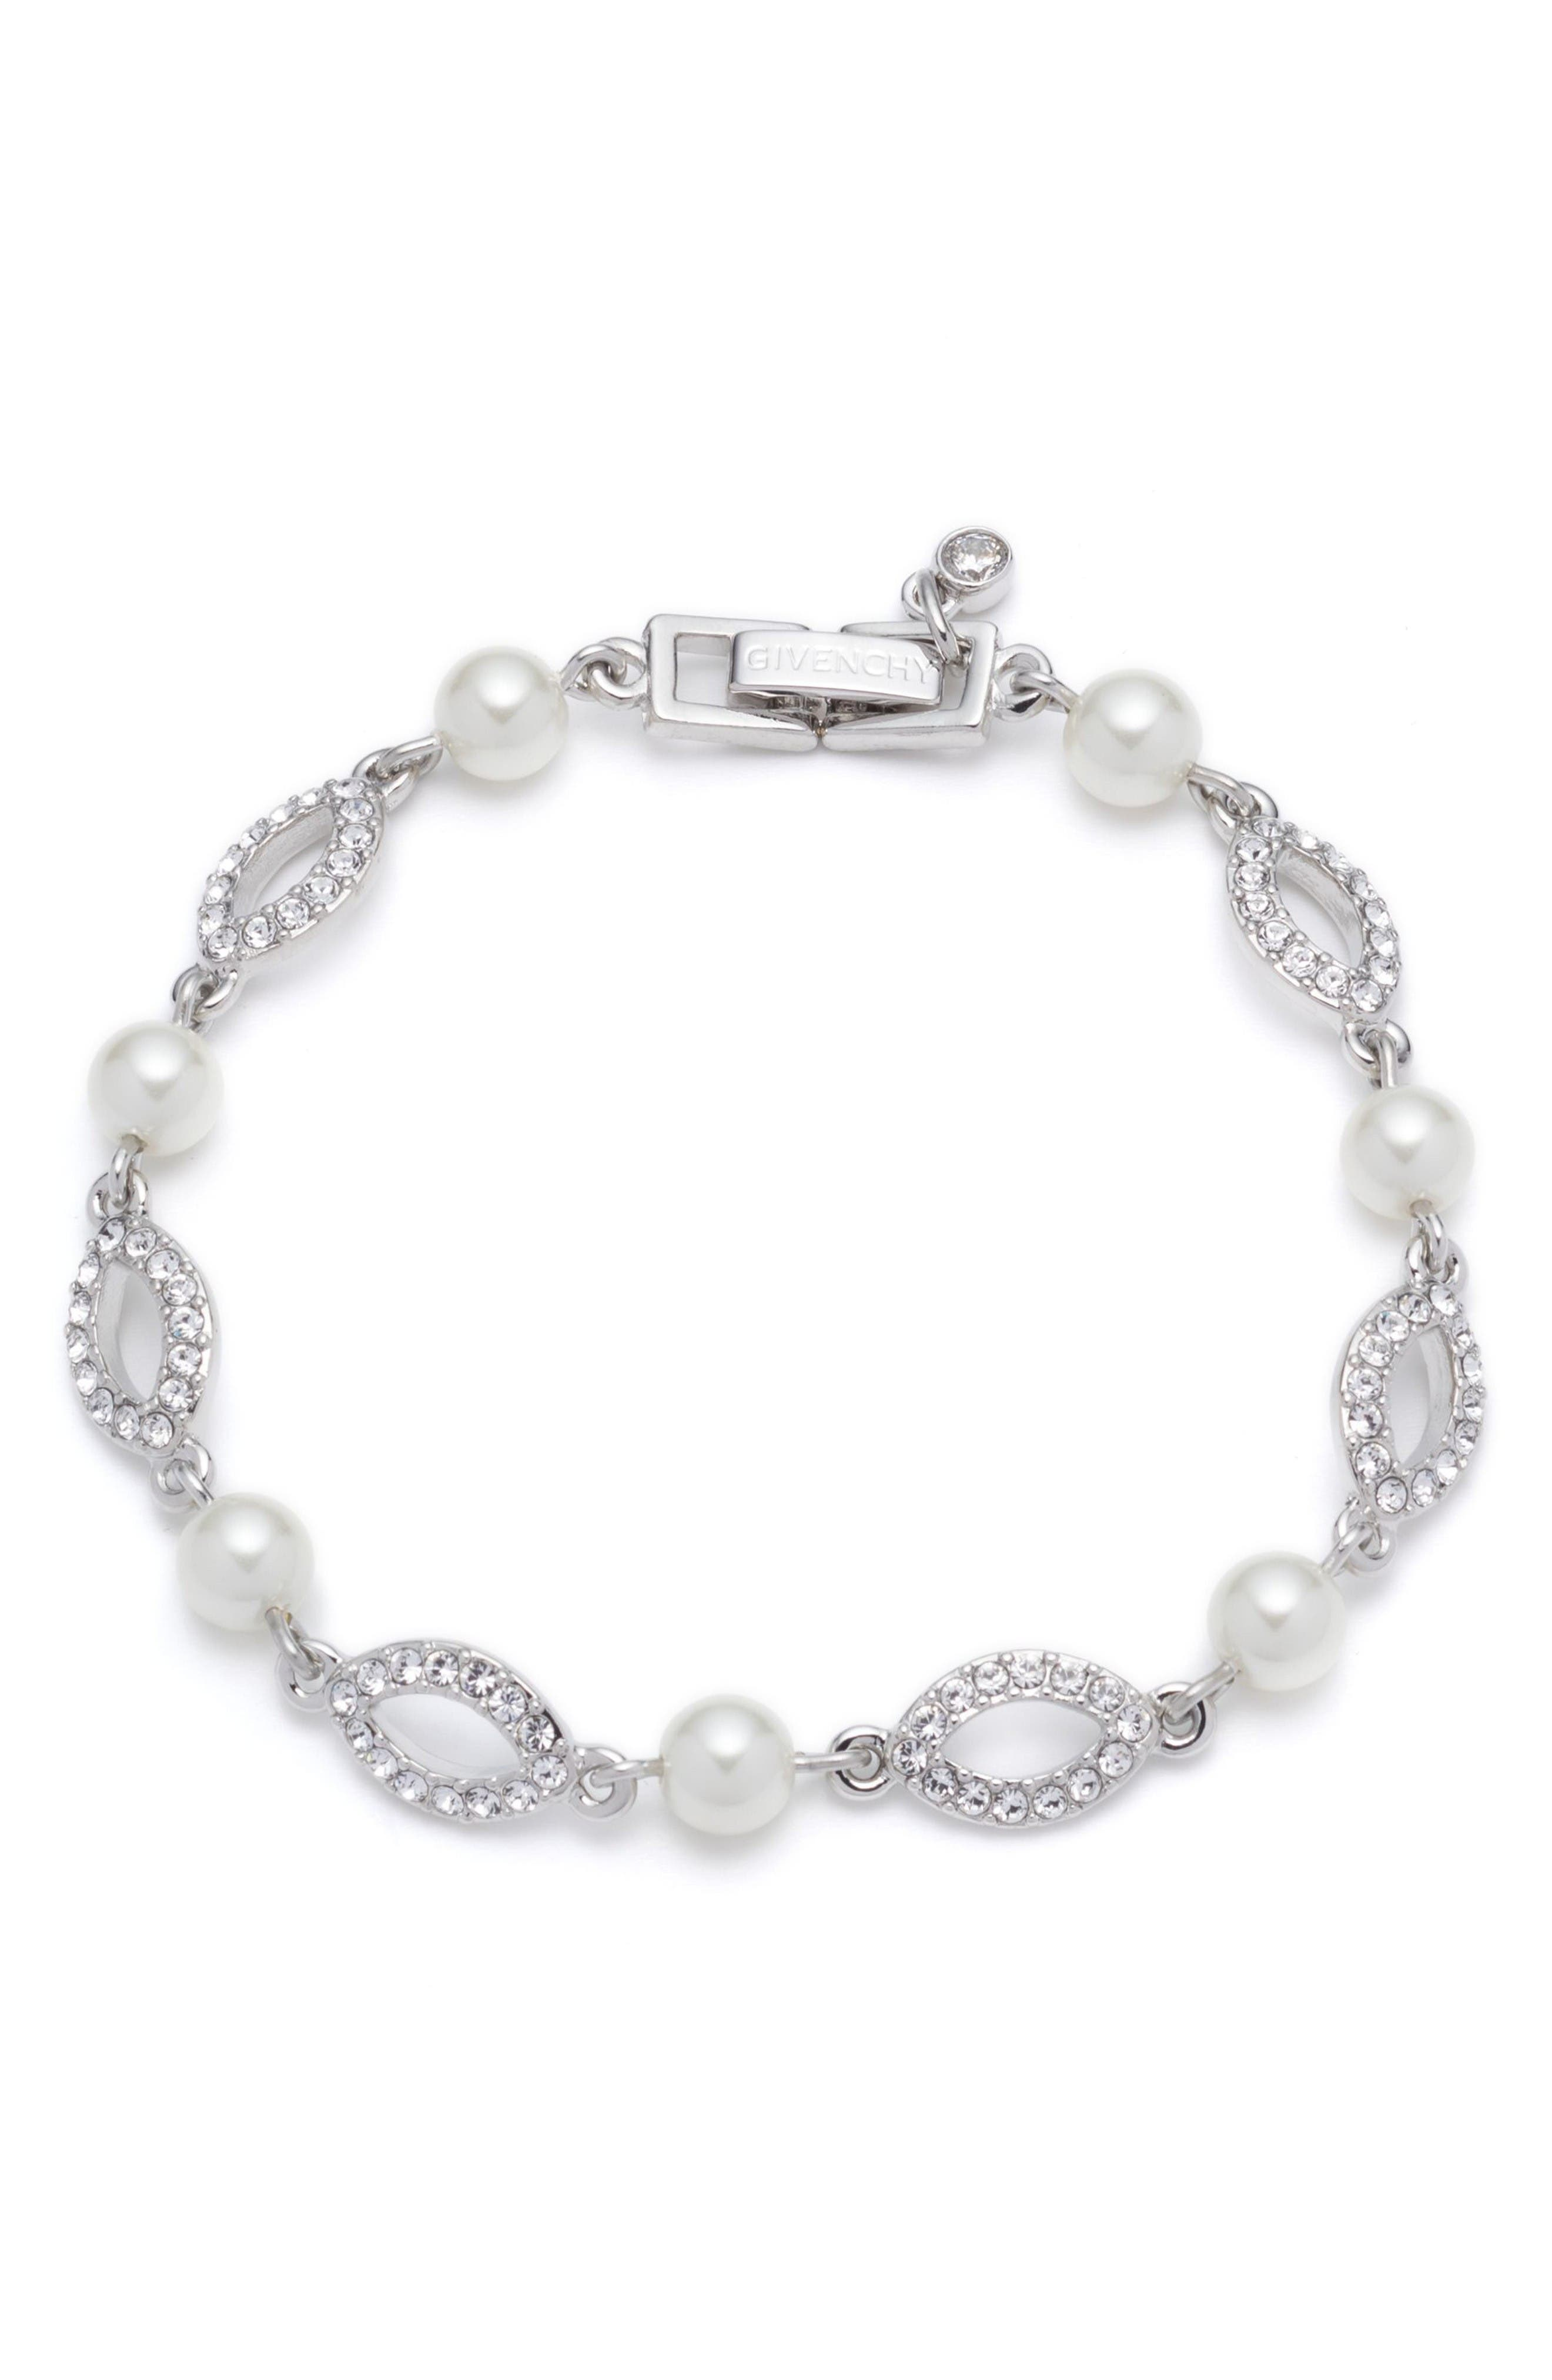 Imitation Pearl & Crystal Line Bracelet,                             Main thumbnail 1, color,                             Silver / White